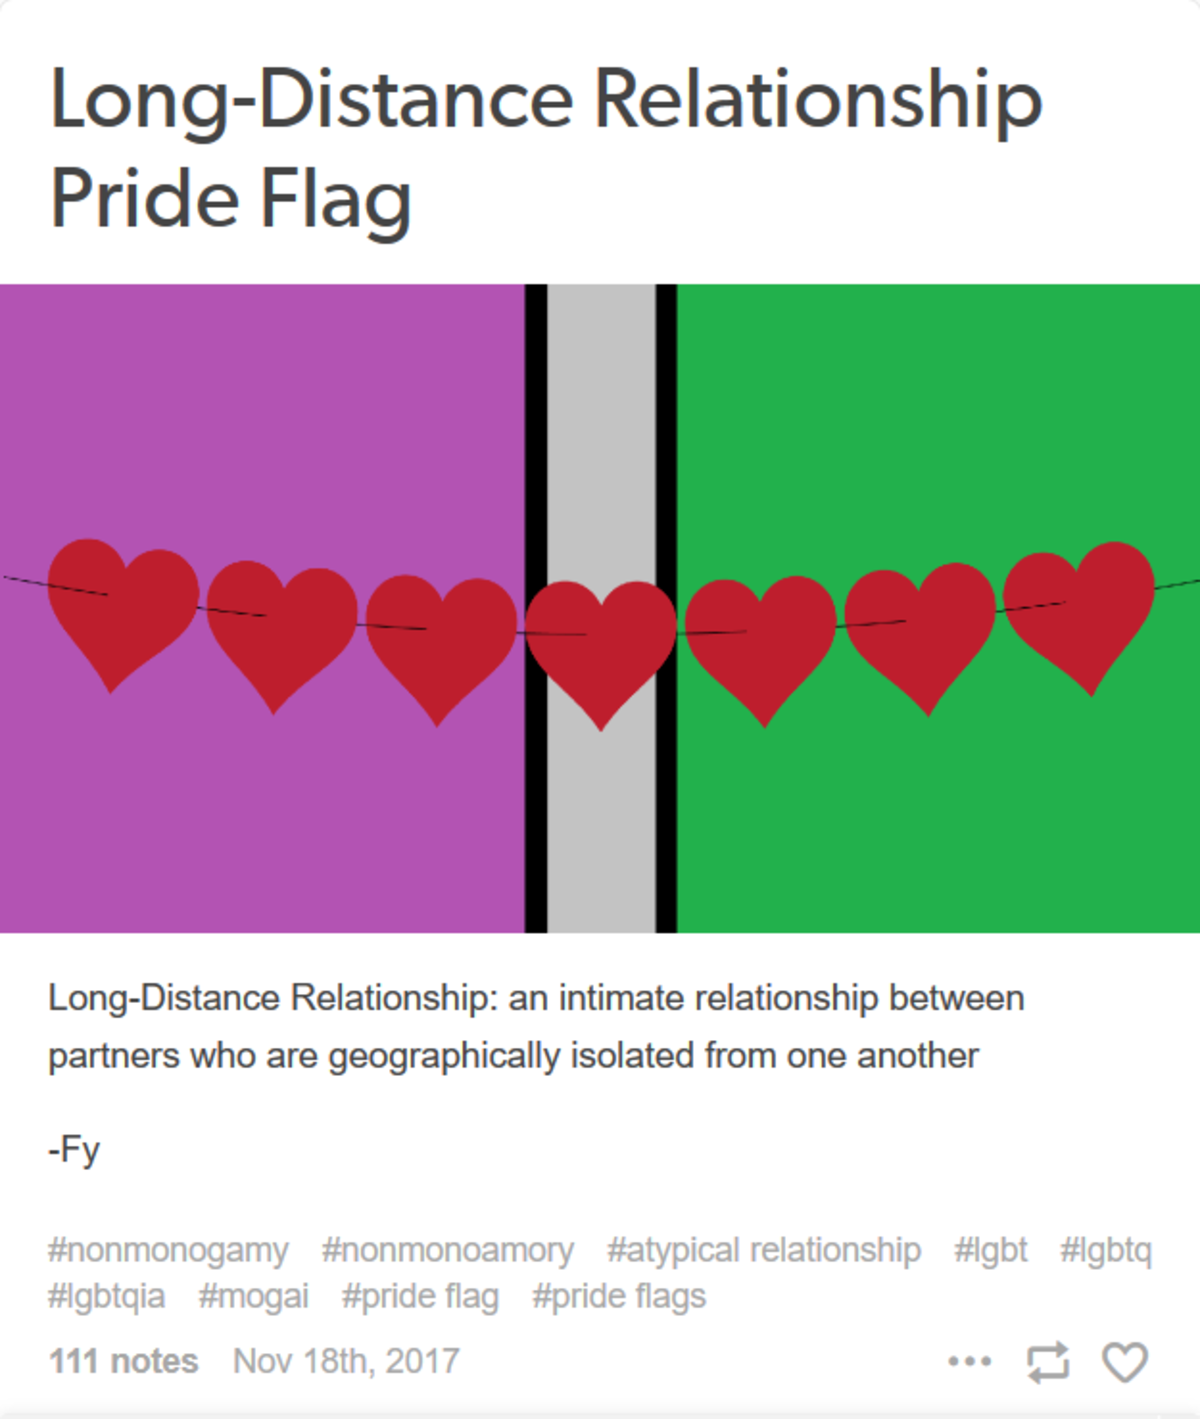 FJ has its own pride flag?. relatedpost=1#notes The page is basically used to unironically pride-flags. Relationship Pride Flag Relationship: an intimate relati